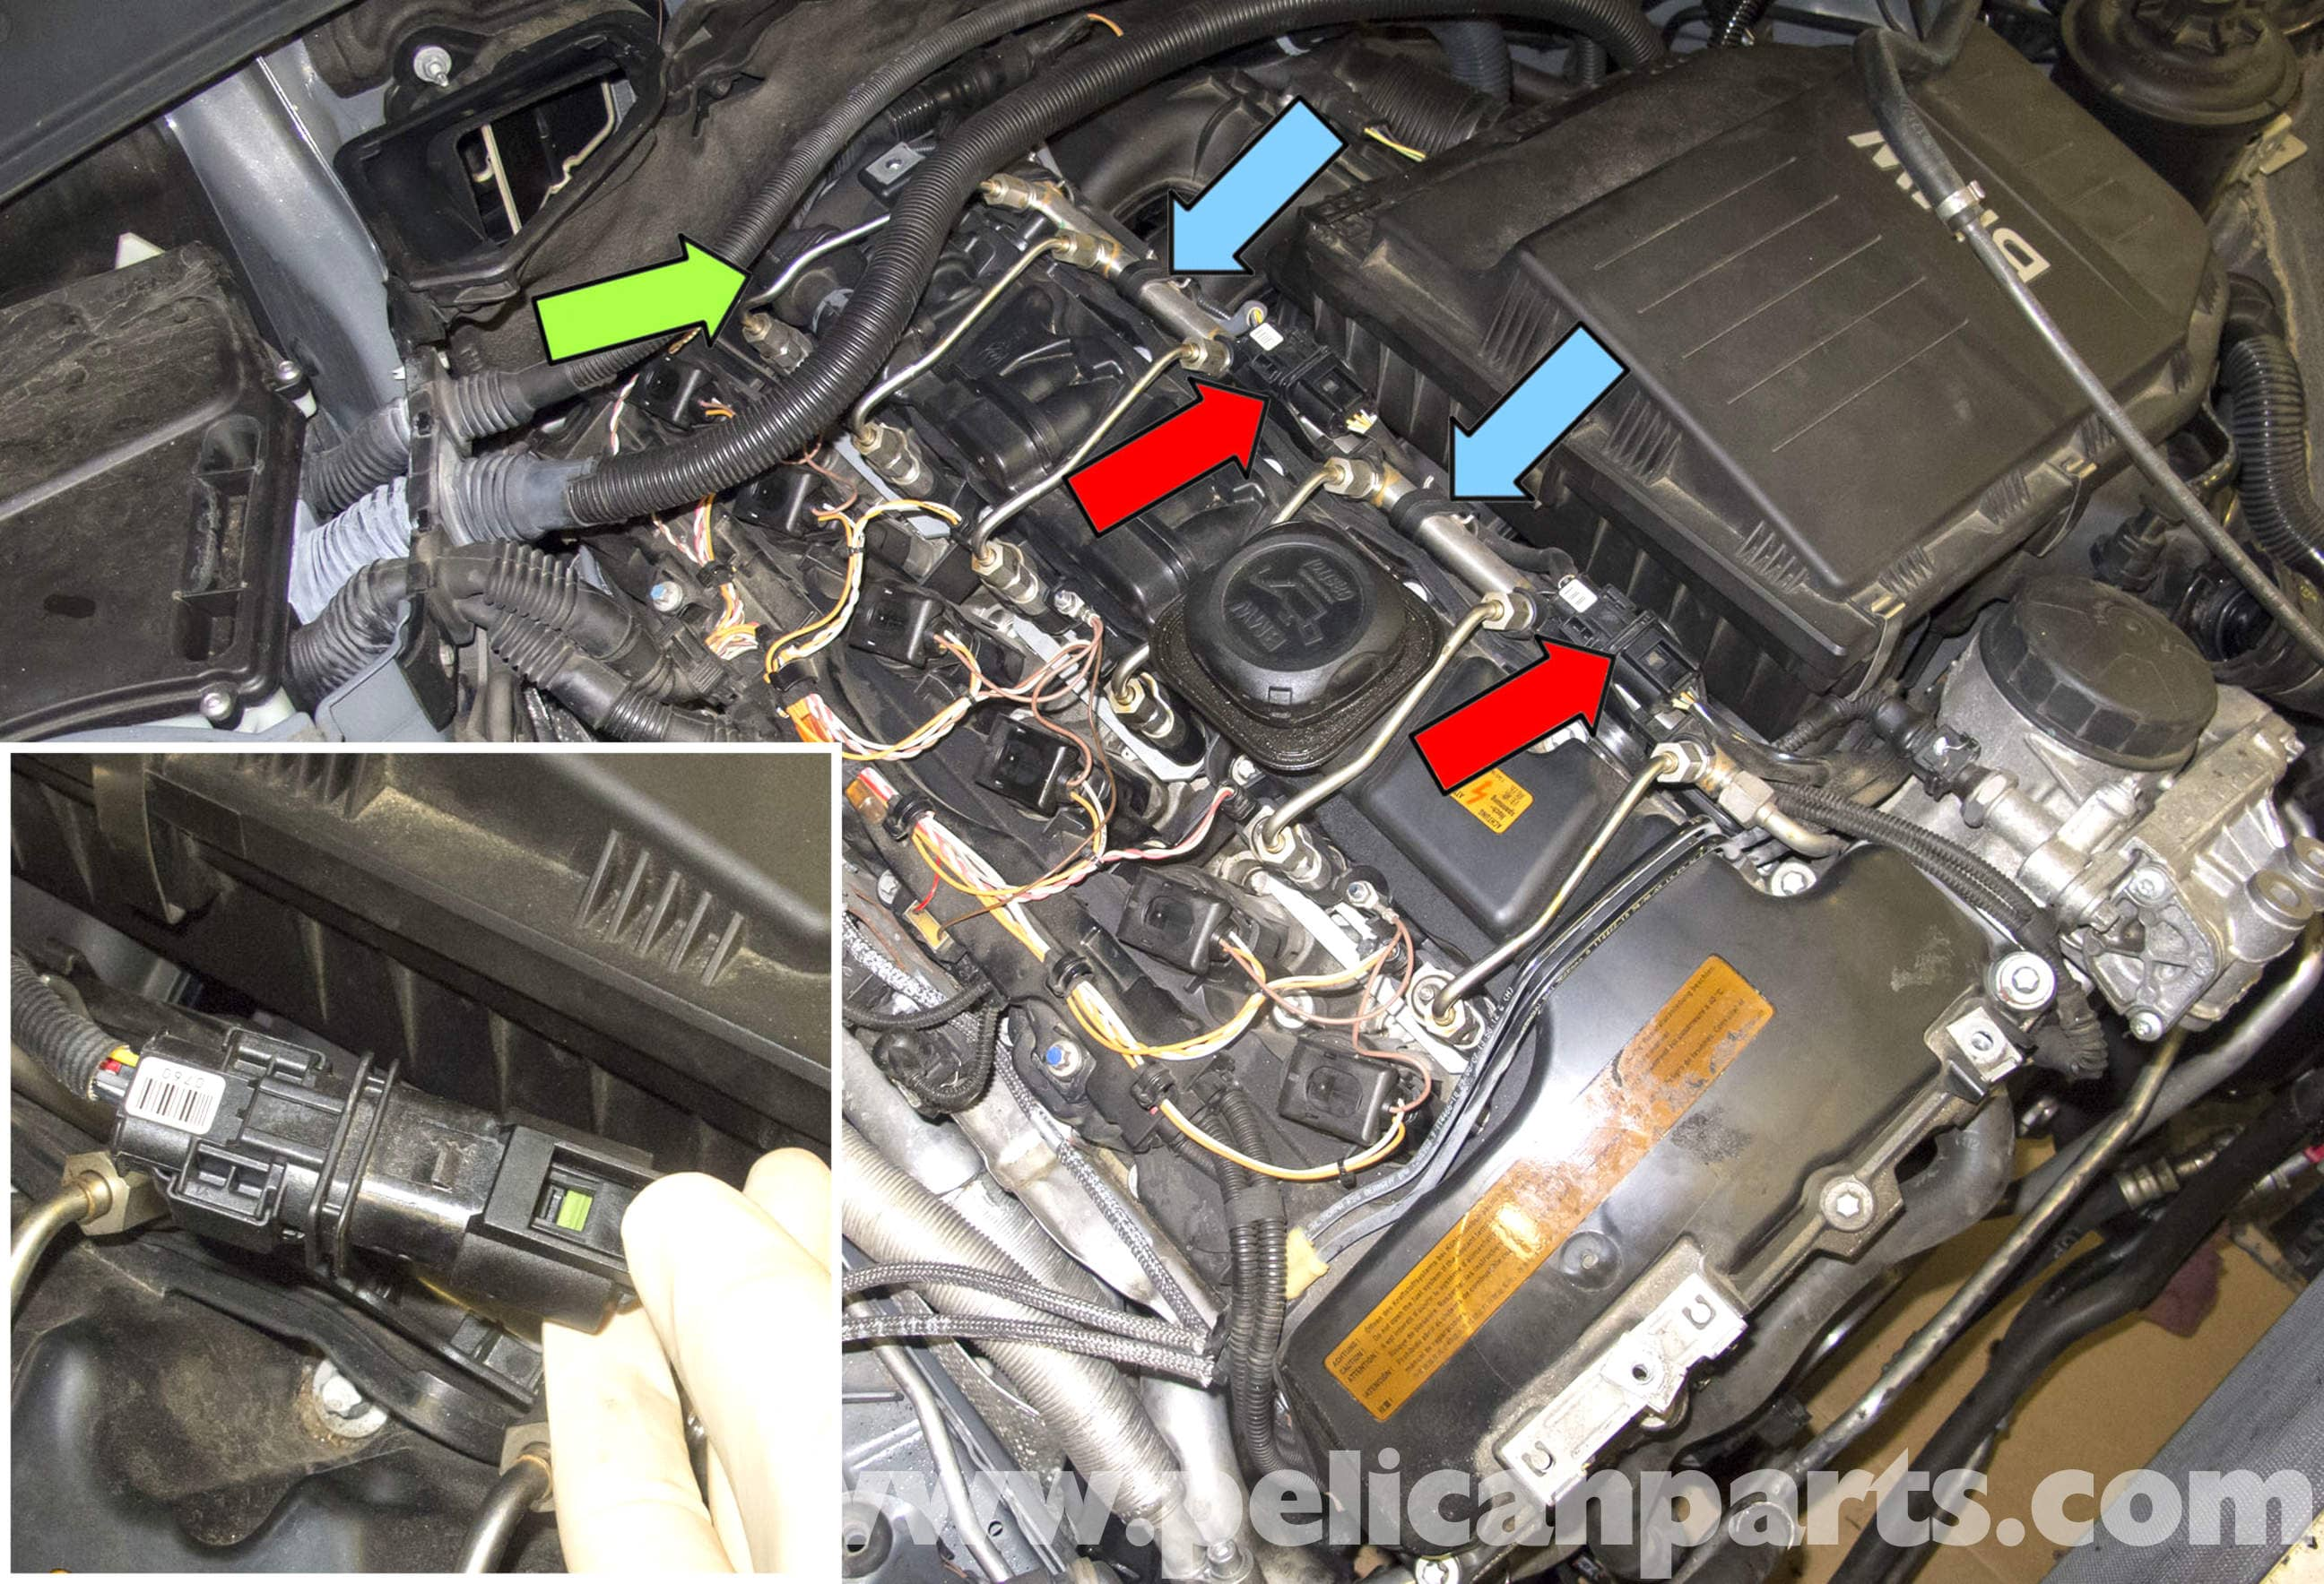 335xi Fuse Diagram Bmw E60 5 Series Turbocharger Replacement N54 Engine